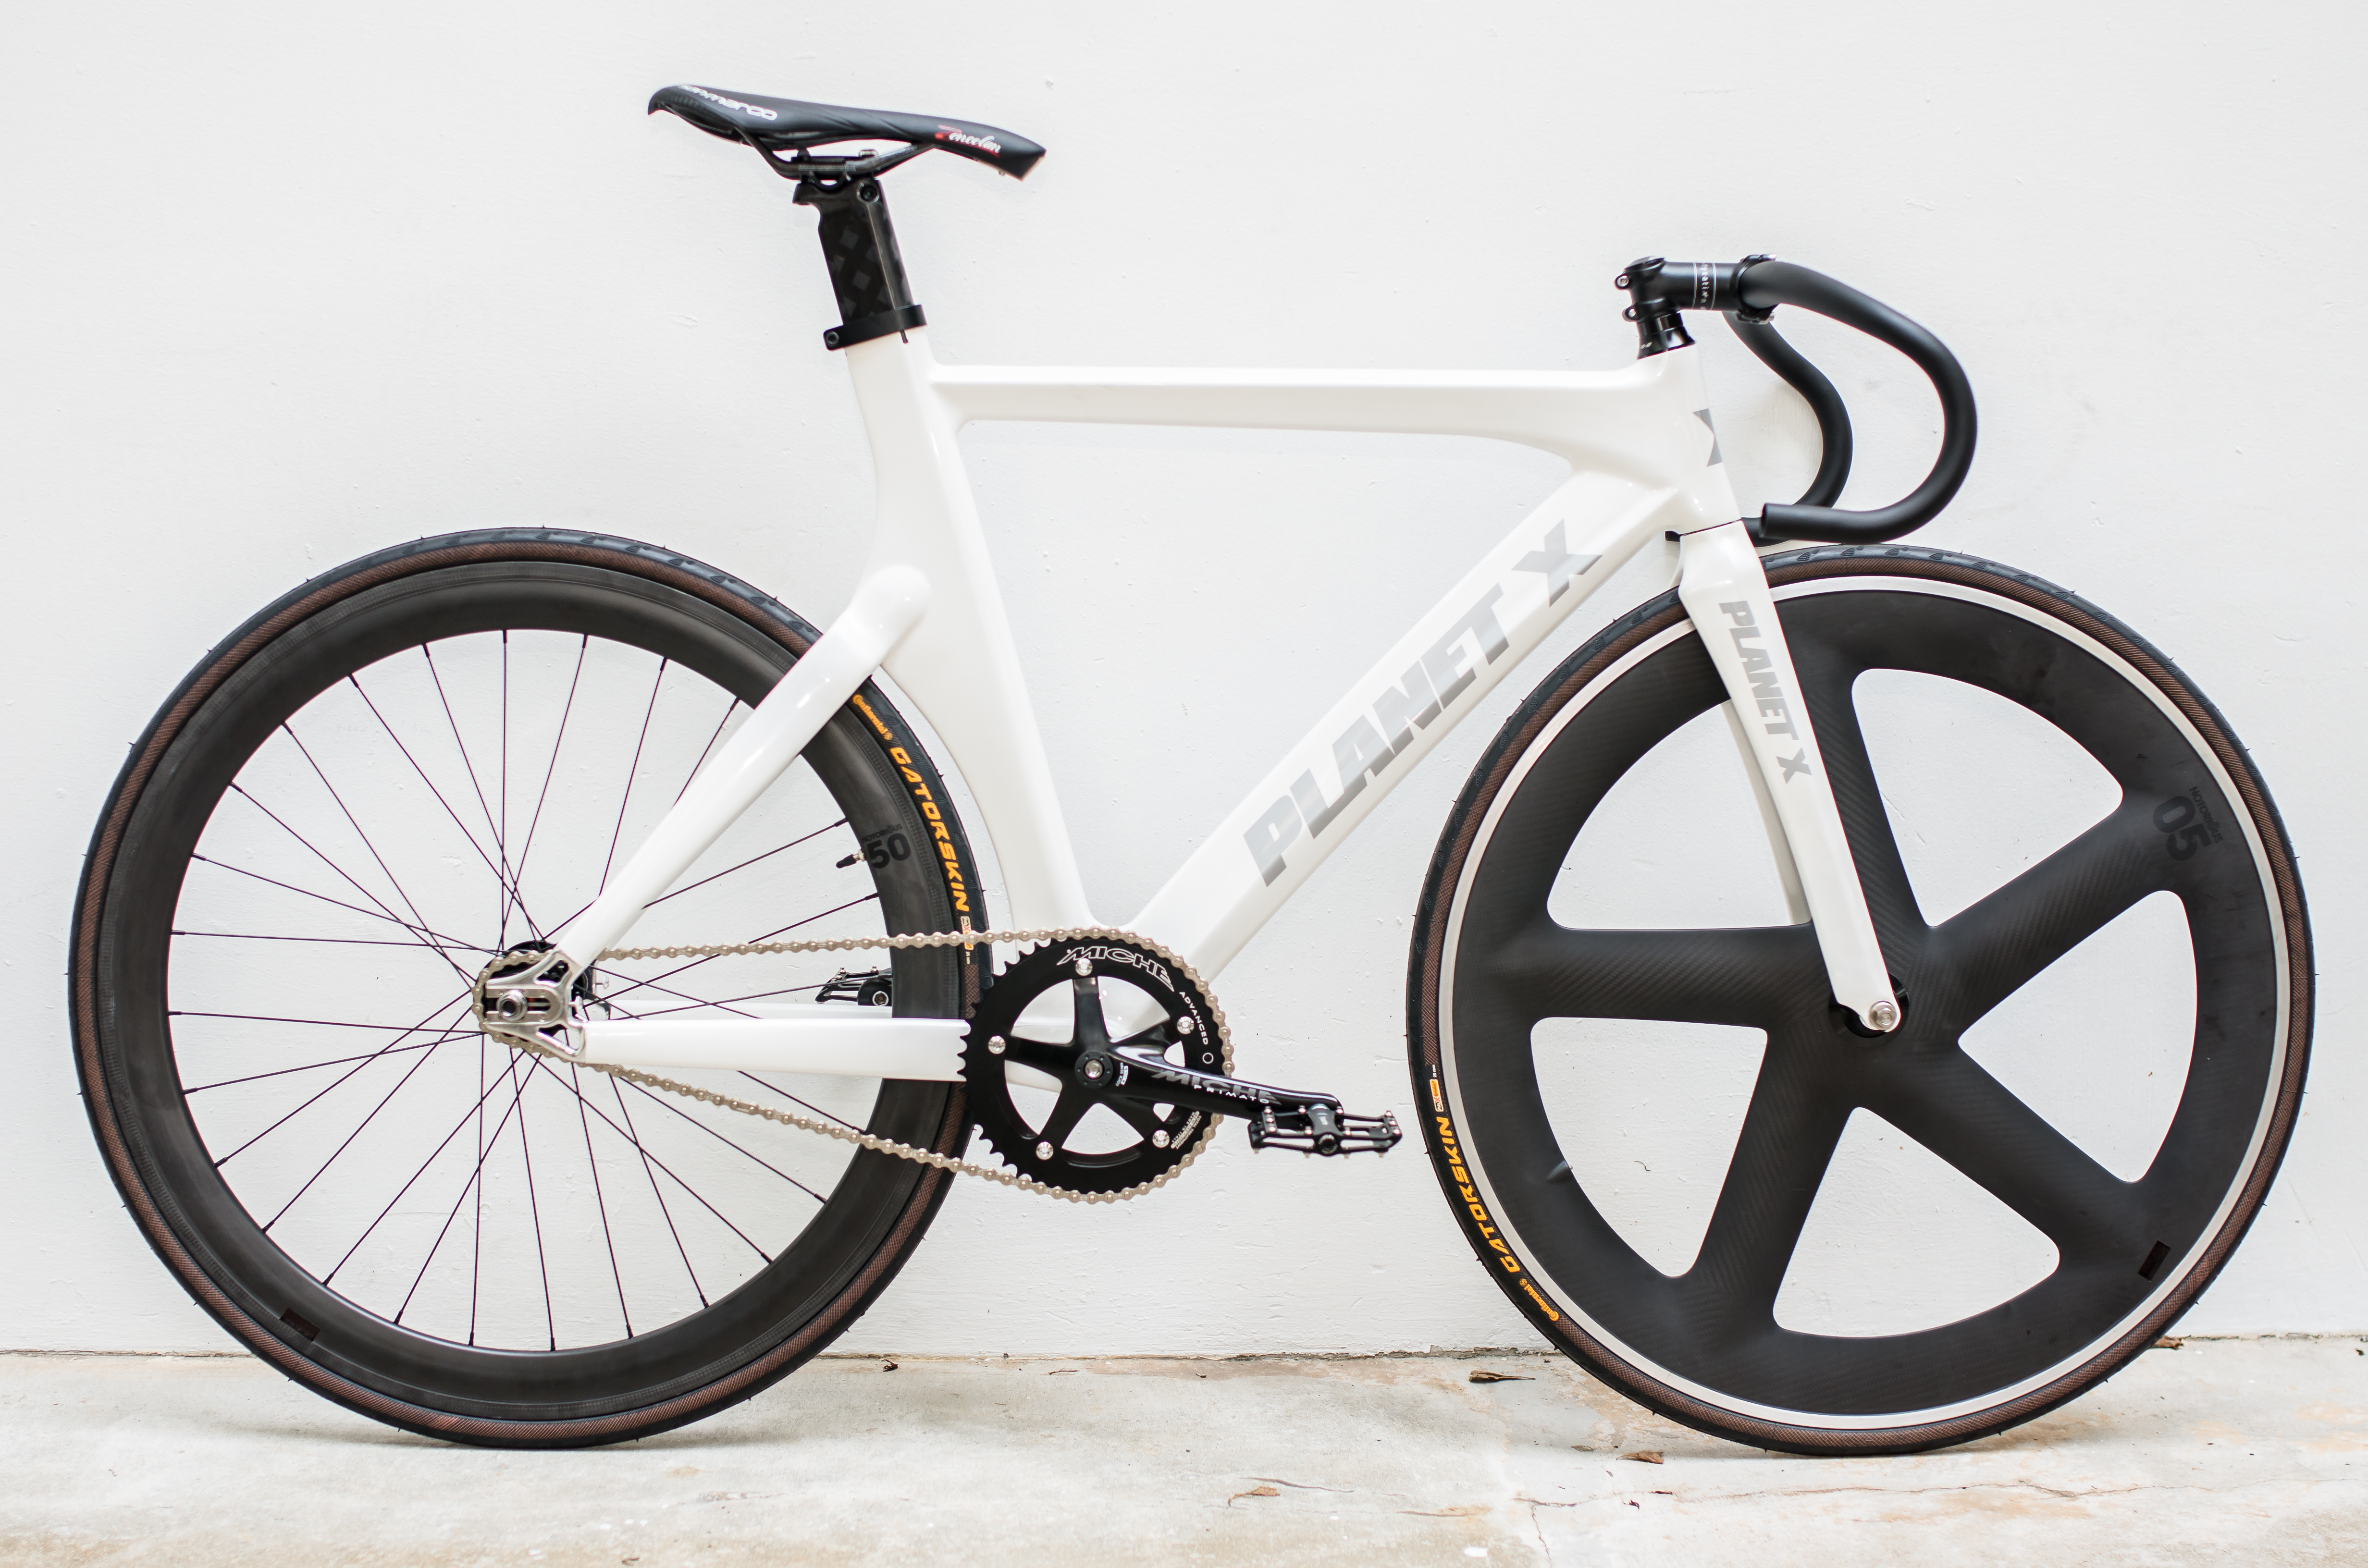 CYCLE PROJECT STORE X PLANET X – THE FIXED LIFE